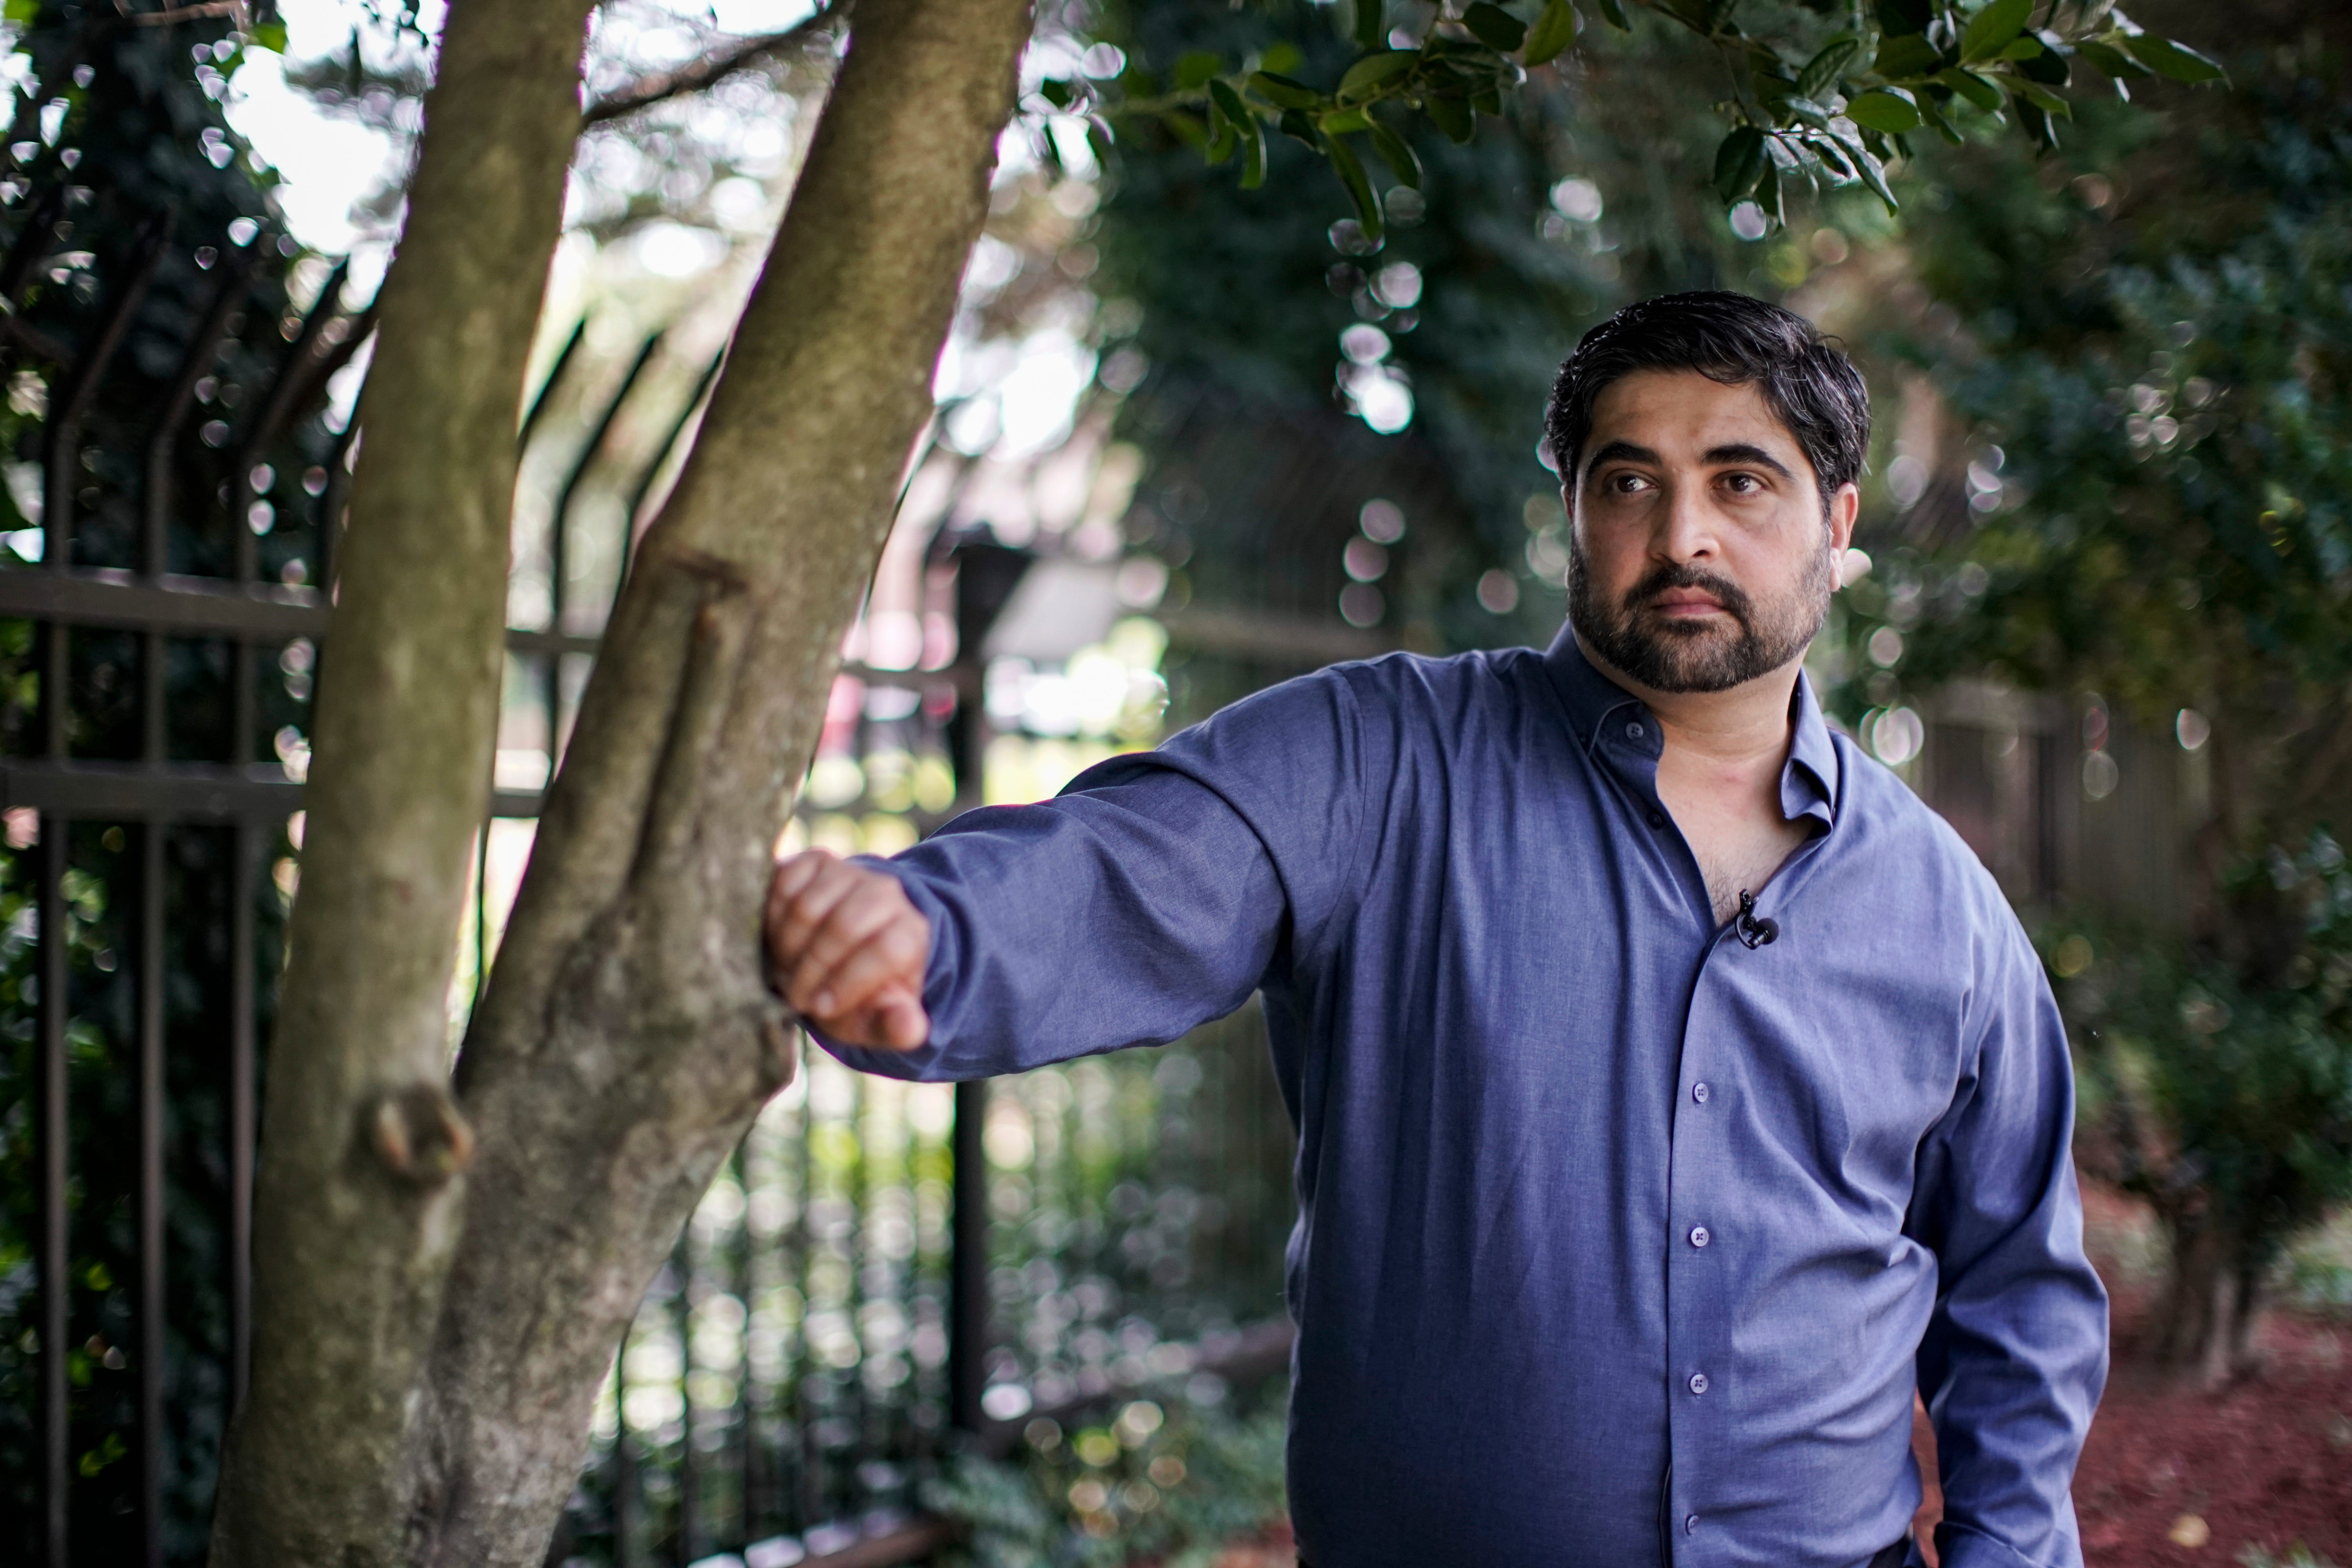 Muhammad Syed of Washington D.C., outside a mosque in Virginia. He left the Muslim religion in 2007 and later founded the nonprofit Ex-Muslims of North America, which helps others making the transition.